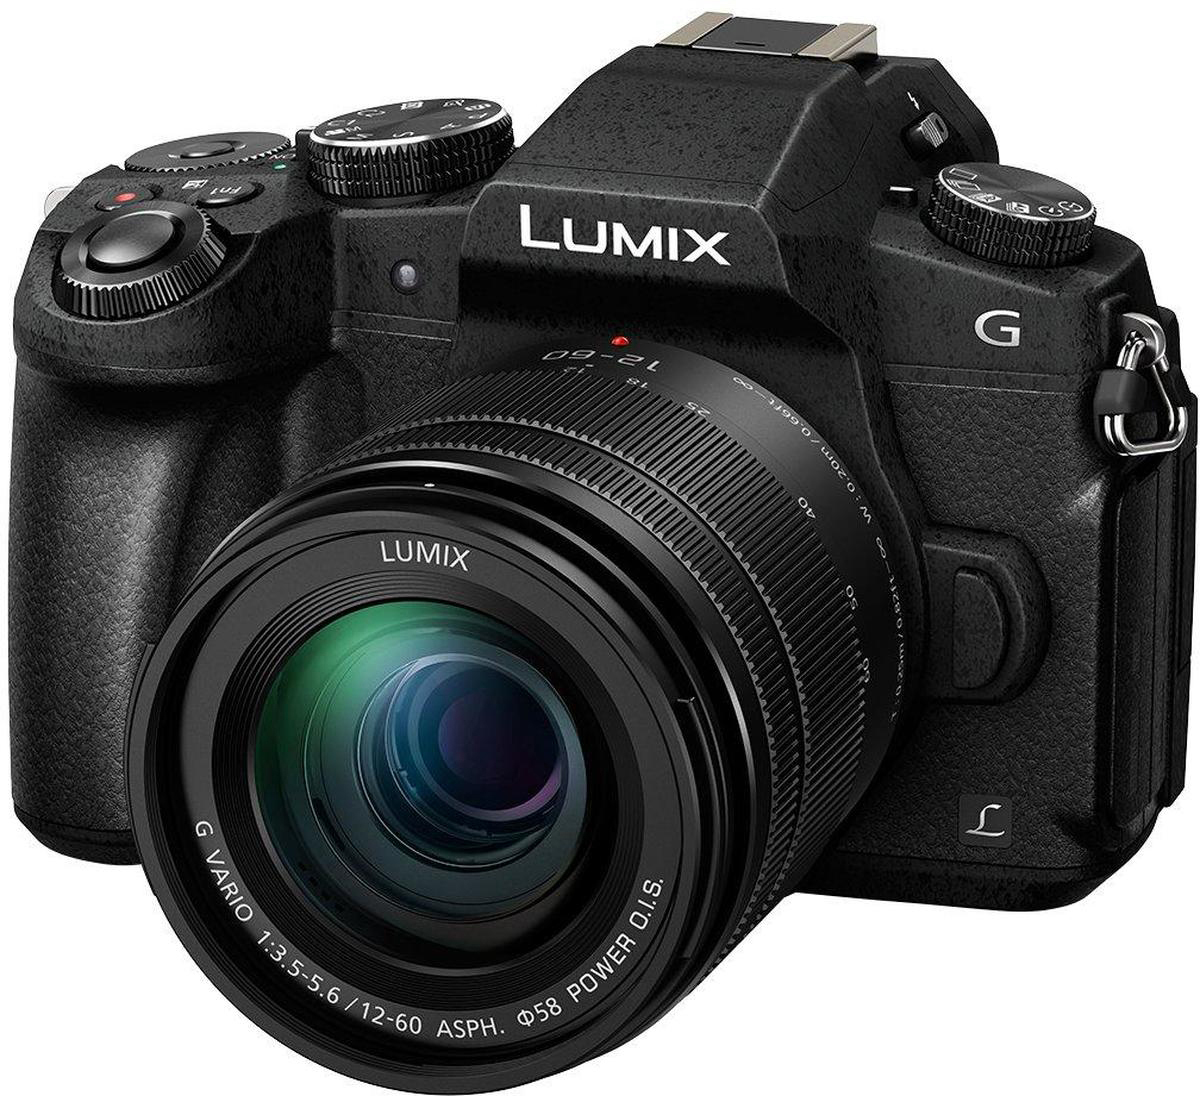 Panasonic Lumix DMC-G80 Kit 12-60mm, Black цифровая фотокамераDMC-G80MEE-KСистемный фотоаппарат Panasonic Lumix DMC-G80 Kit 12-60mm f/3.5-5.6 ASPH. POWER O.I.S. Lens